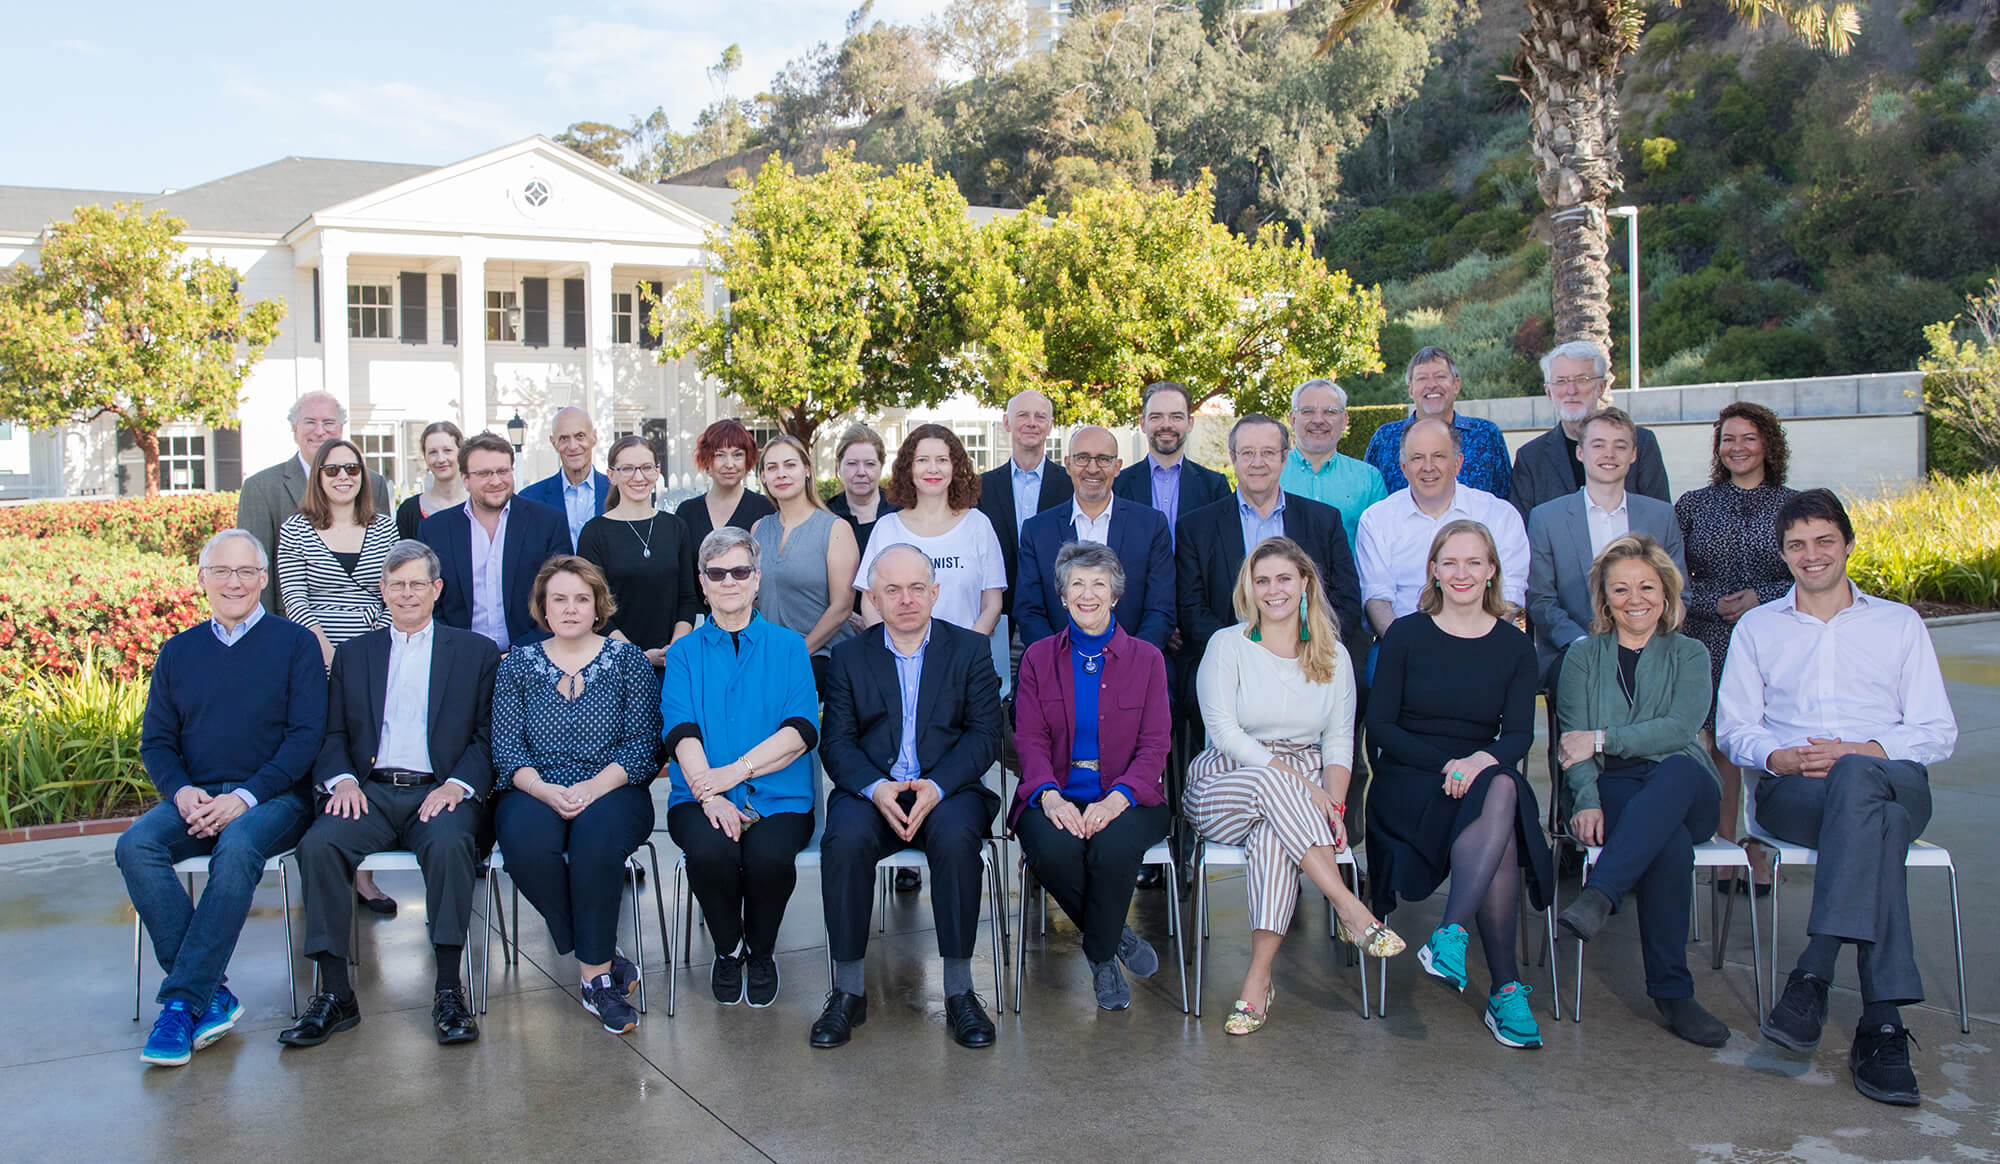 Members of the Transatlantic Working Group (TWG) in Santa Monica, California.